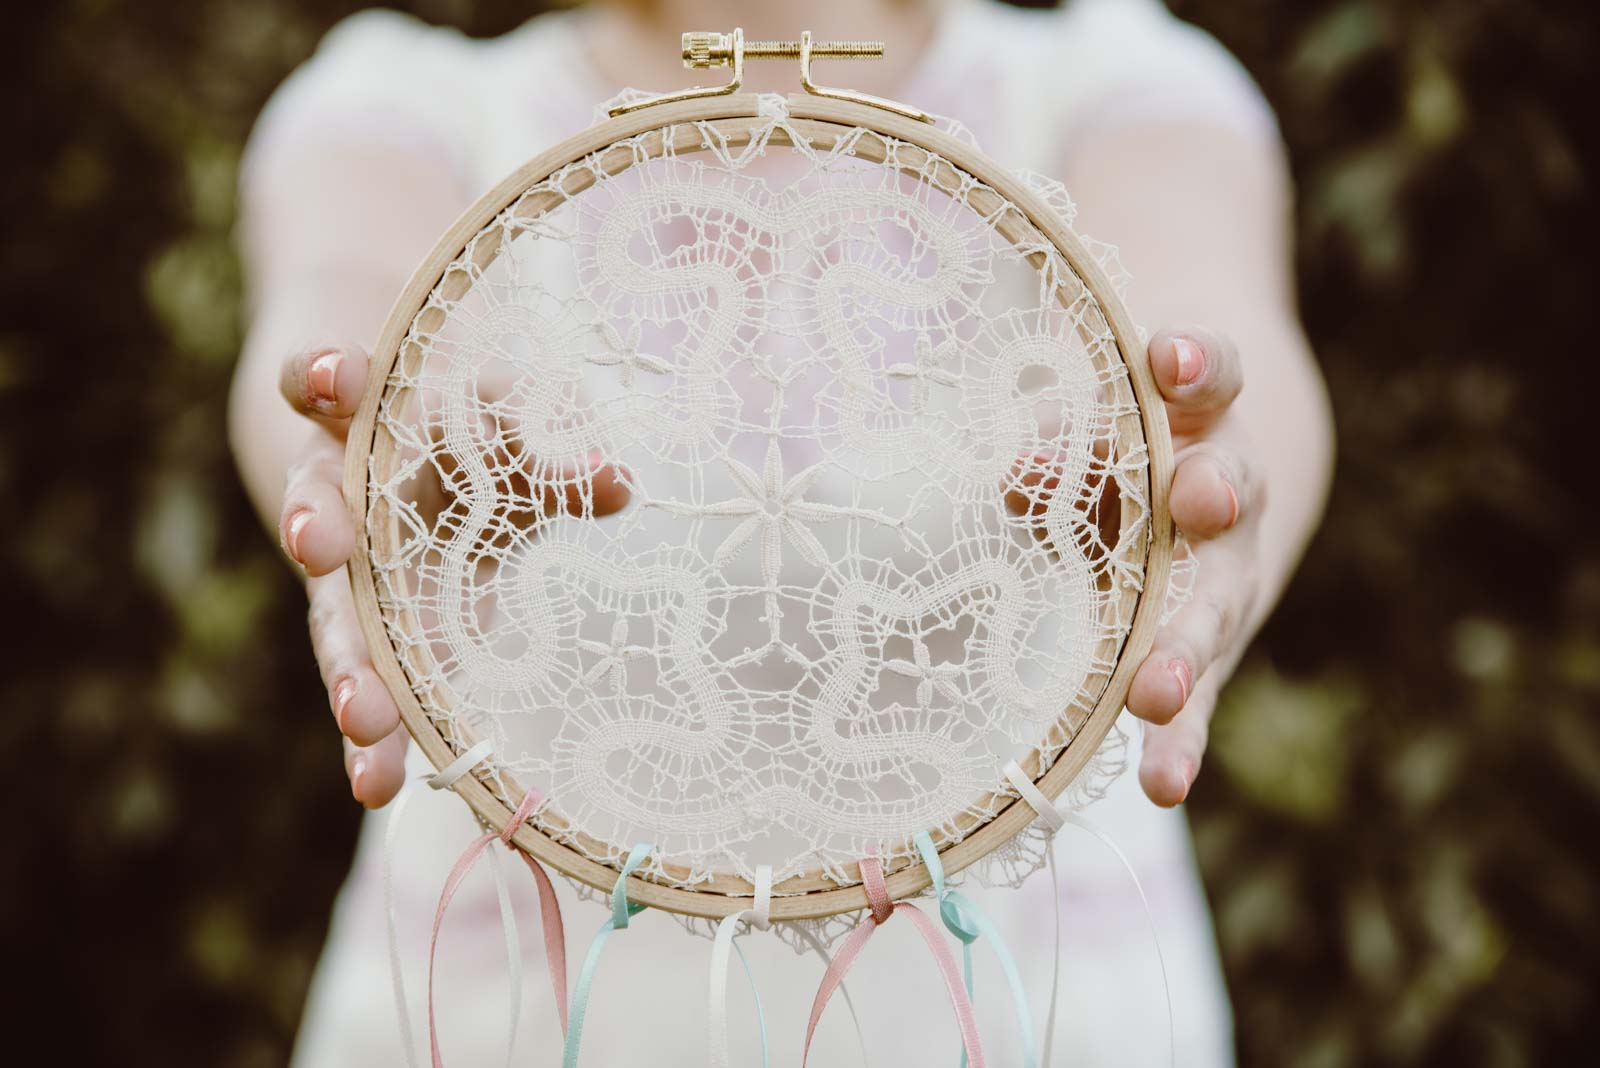 DIY-Dreamcatcher-Boho-Wedding-Dekoration-Traumfaenger-Hochzeitsdekoration-48